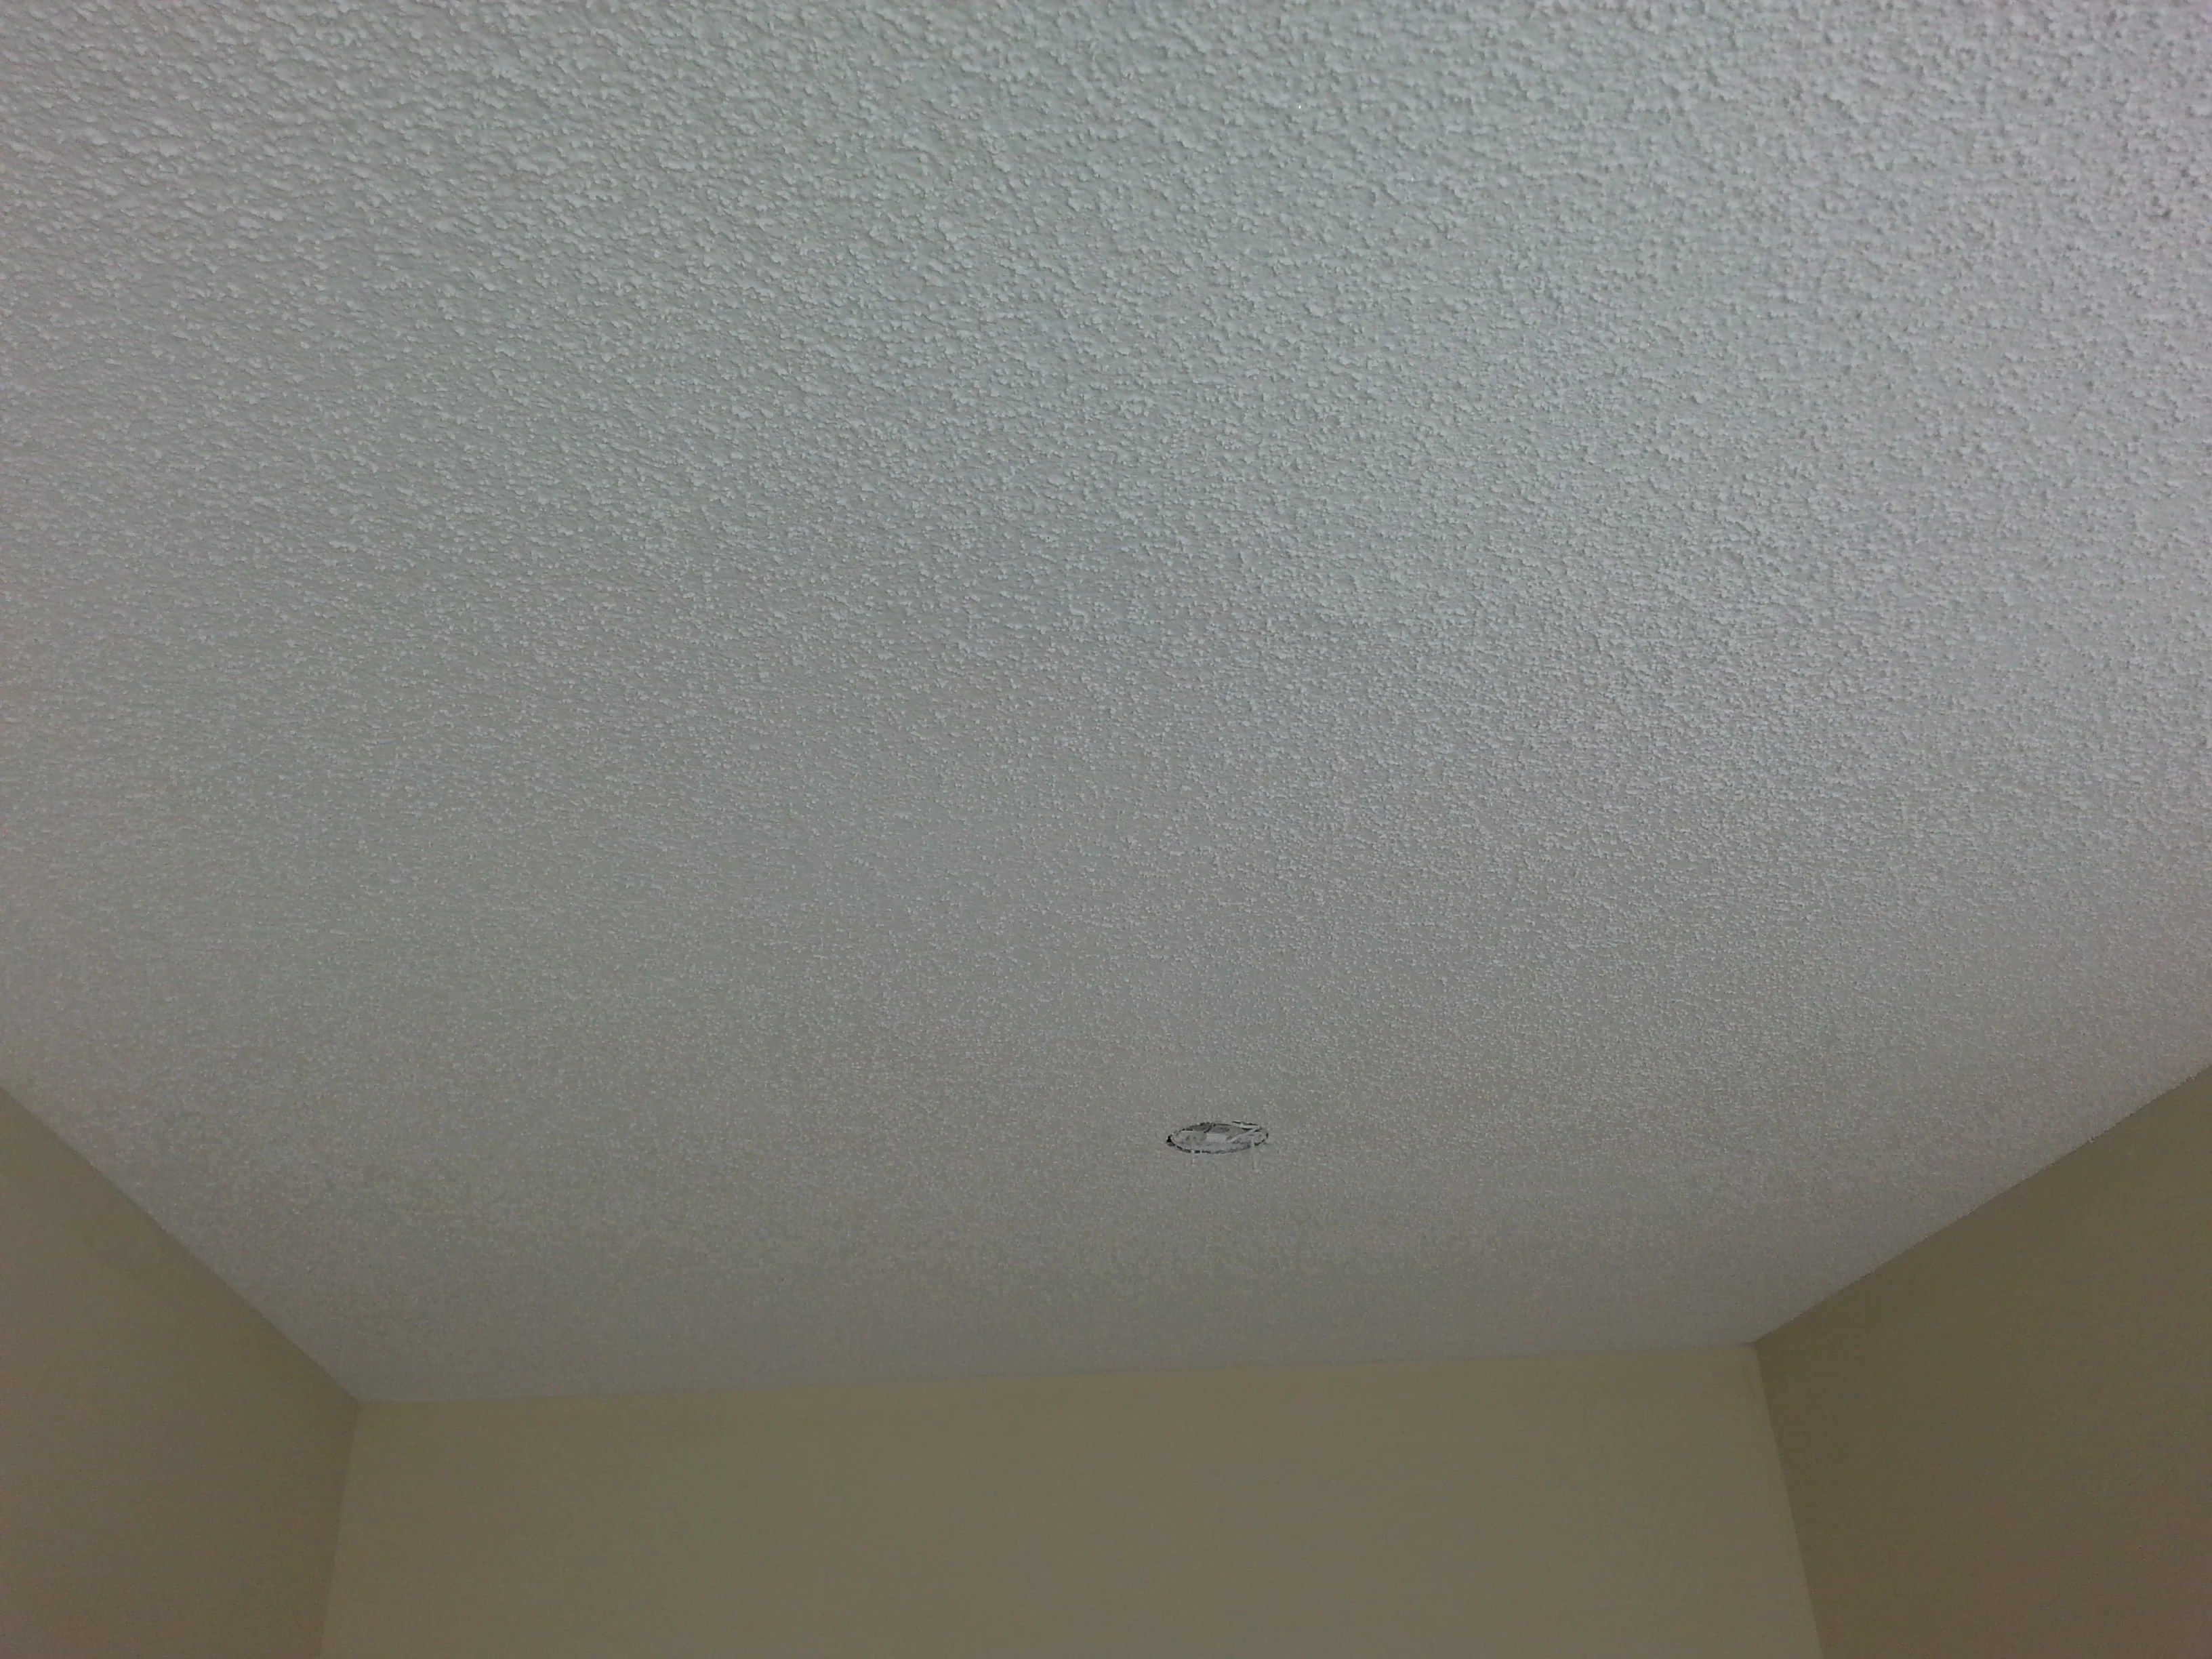 Wet Patch On Ceiling After Rain